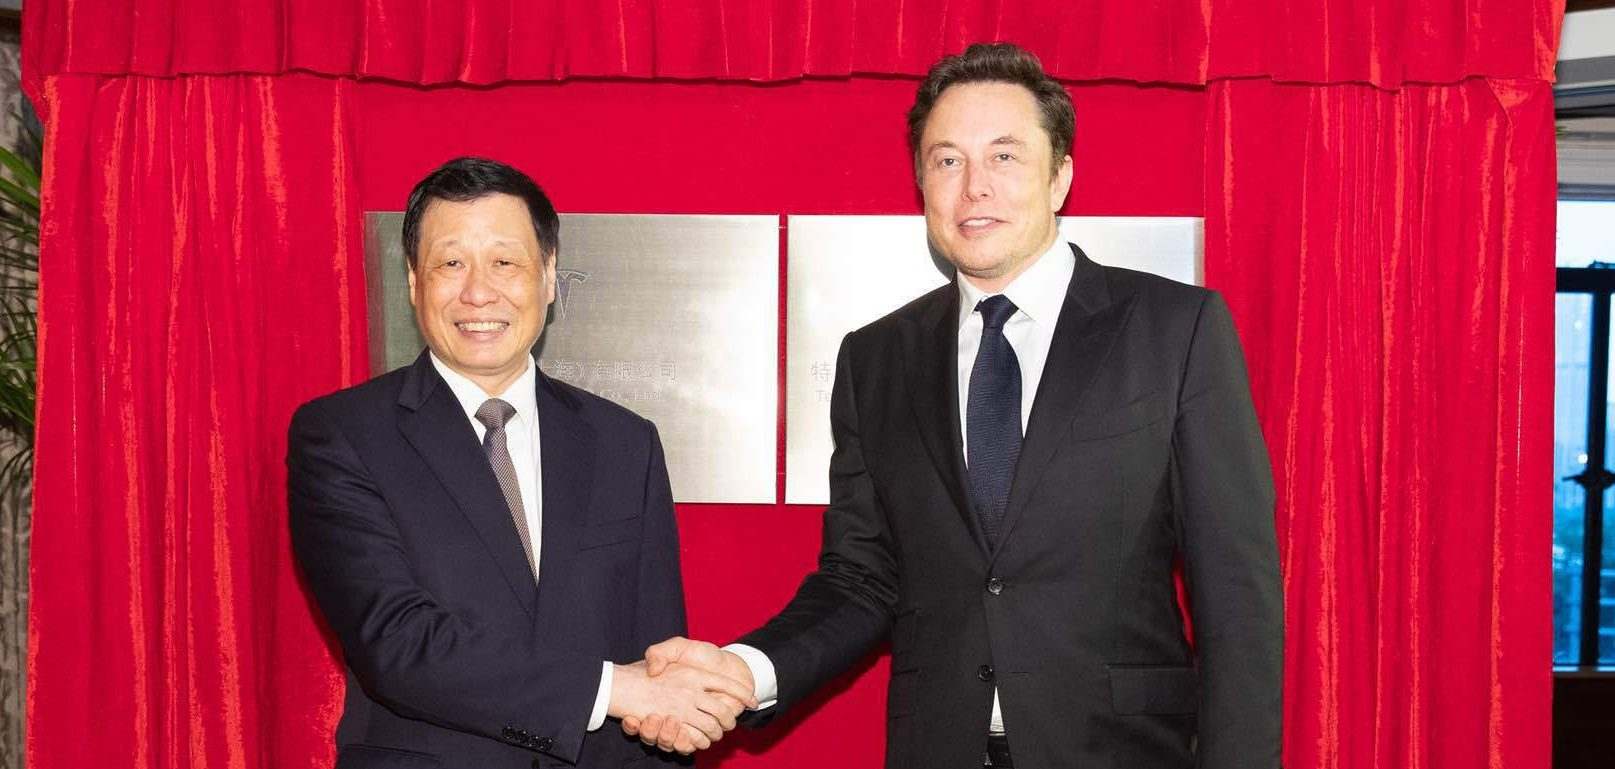 Tesla makes Gigafactory 3 in China official, plans to start production in 2 years